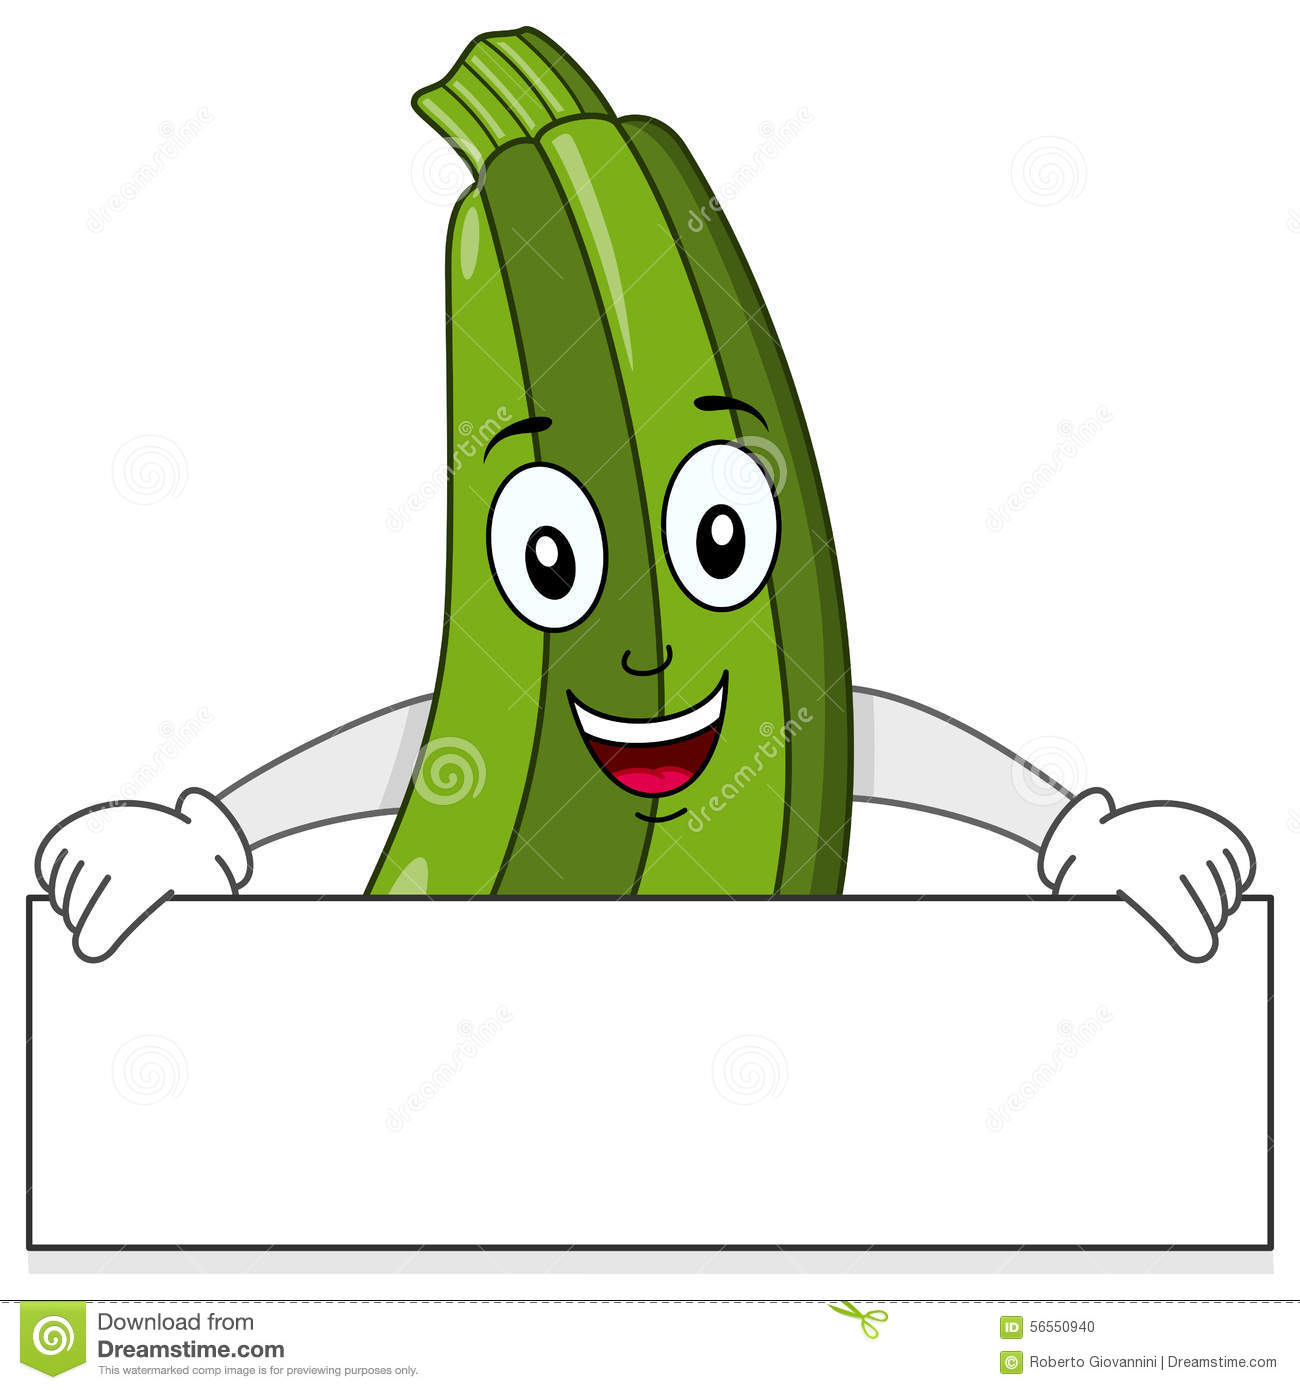 Zucchini character clipart png freeuse Happy Smiling Zucchini Character Stock Vector - Image: 41159394 png freeuse